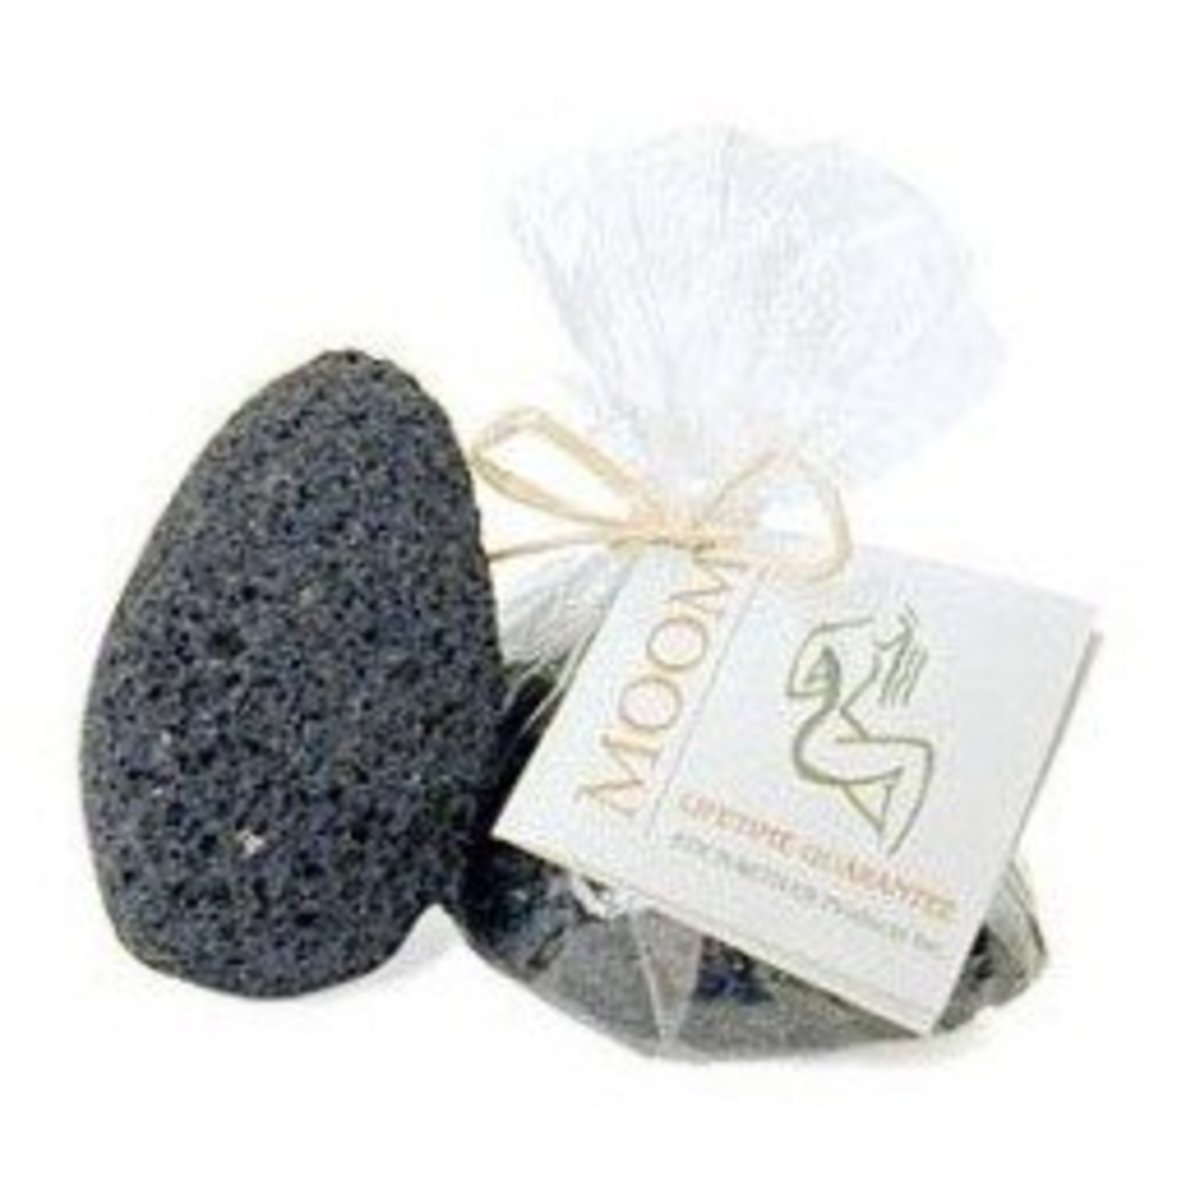 The Moom Beauty Products Volcanic Beauty Stone is a medium-to-coarse pumice stone and will work well for those with really tough skin calluses and hard-to-remove dry skin.